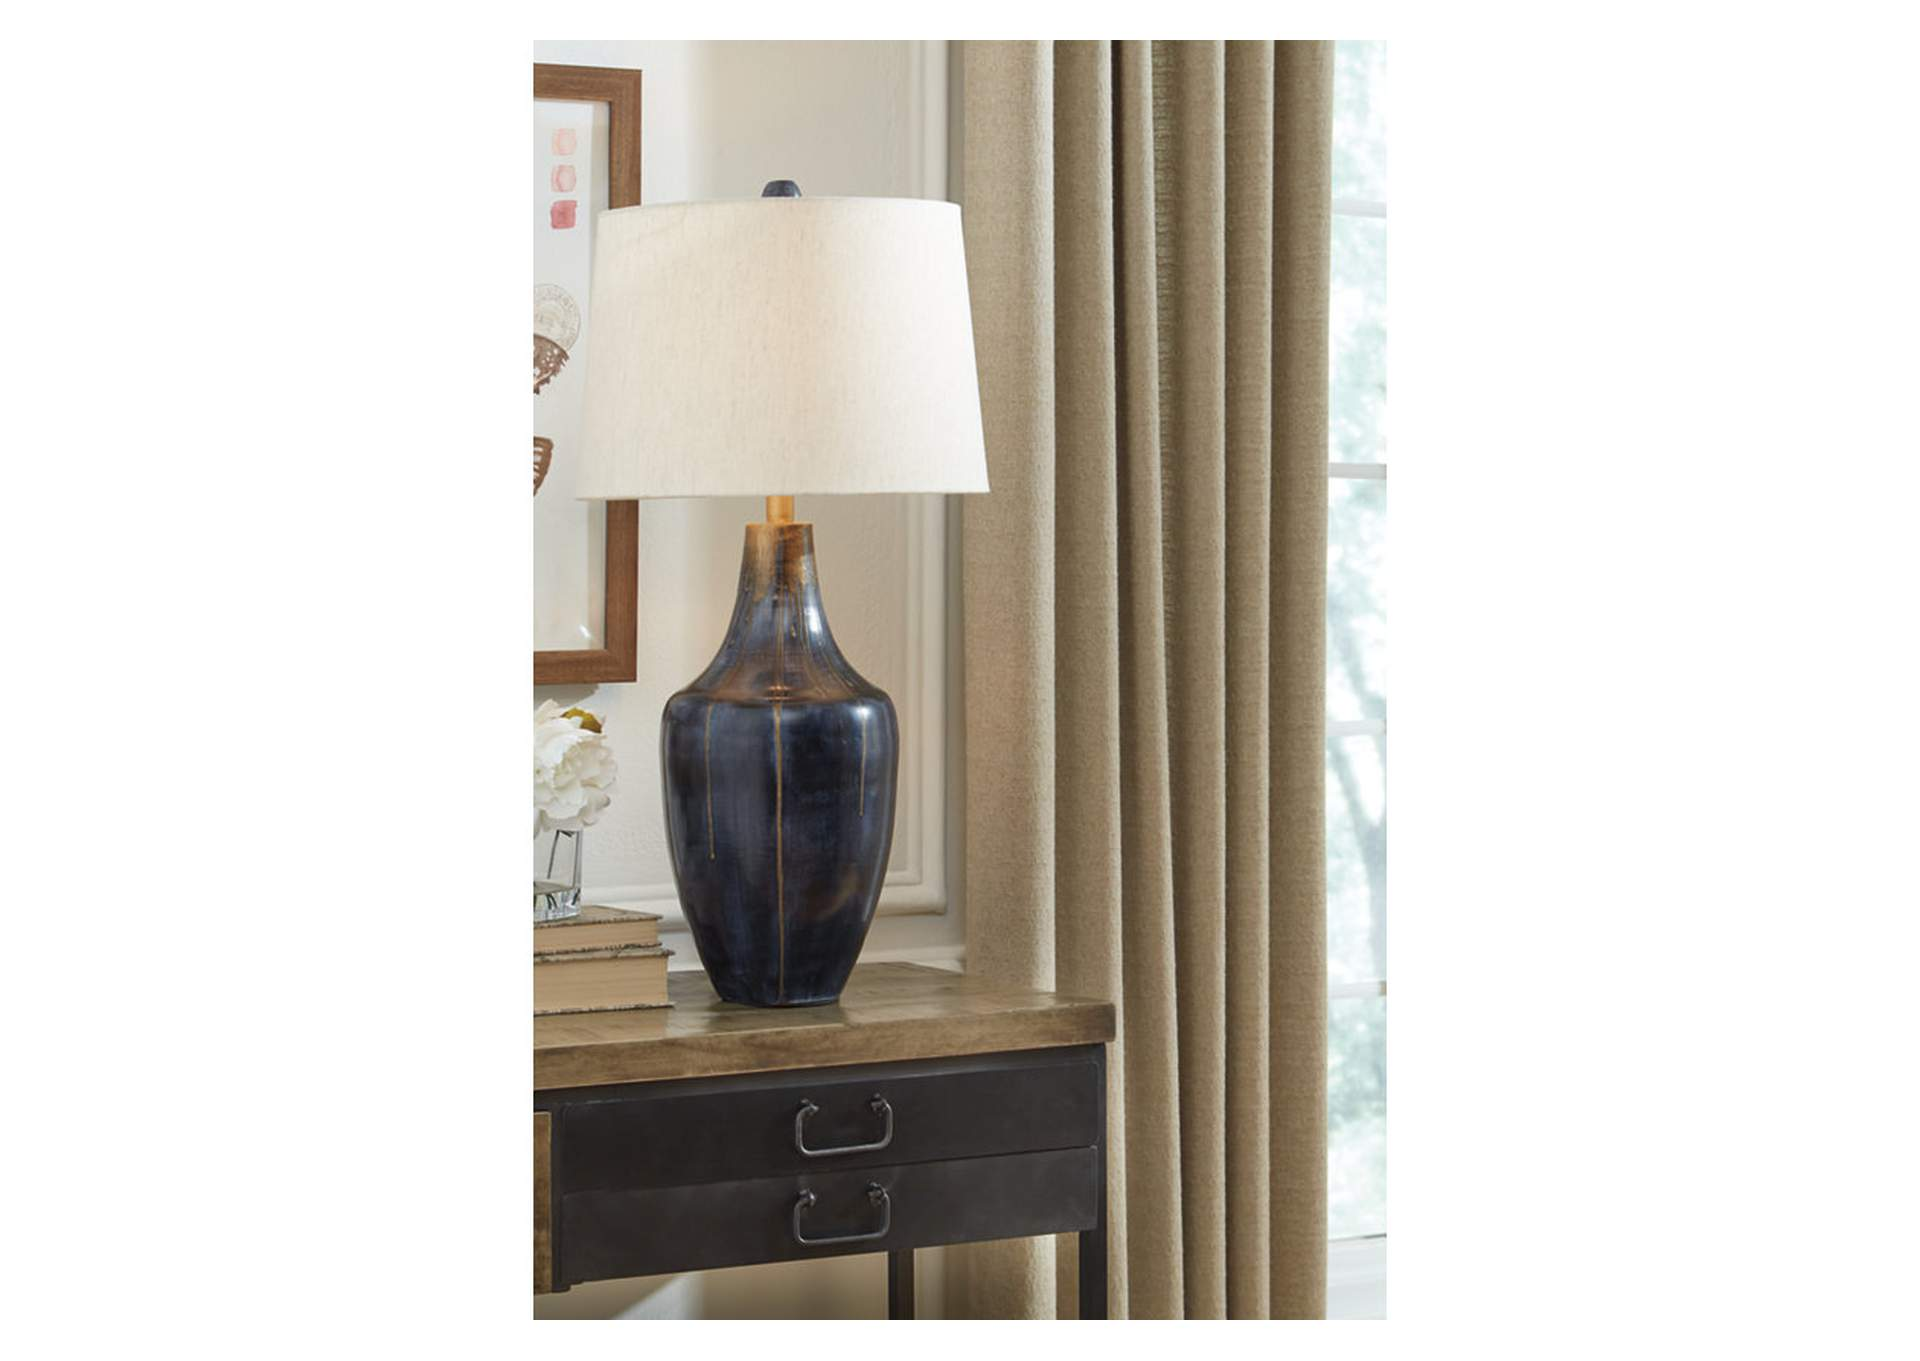 Evania Indigo Table Lamp,Signature Design By Ashley